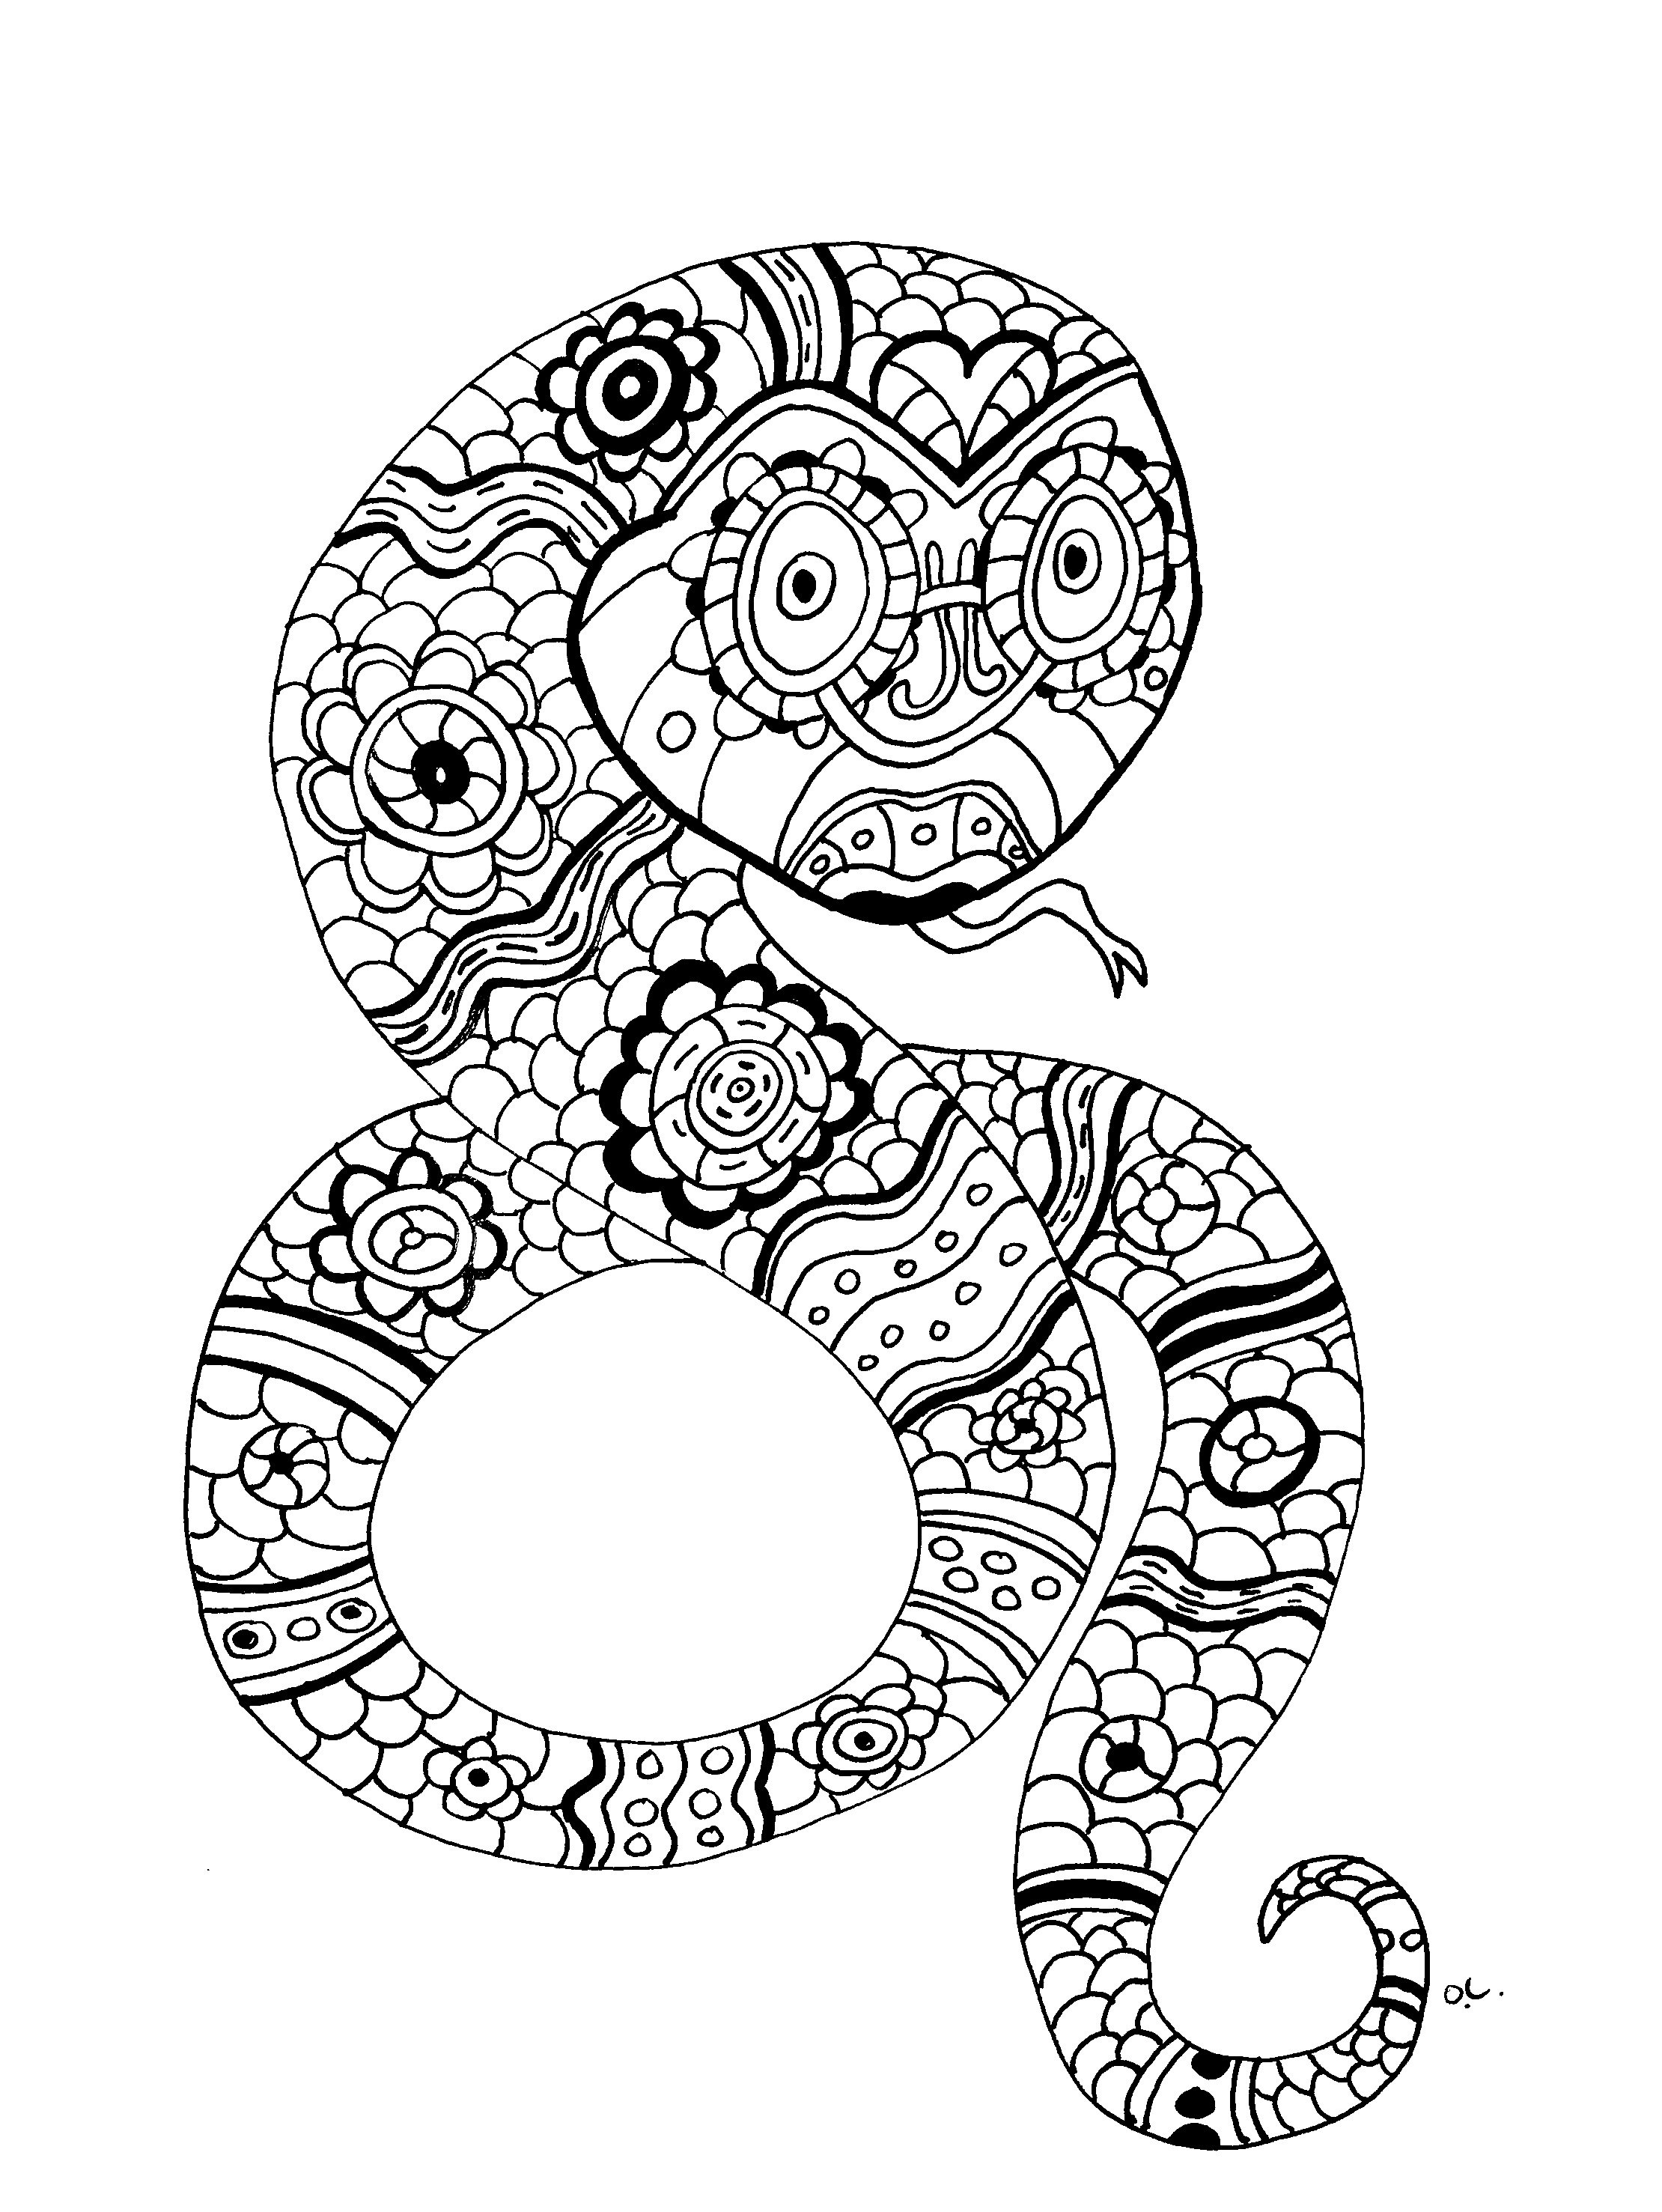 Best ideas about Snake Coloring Pages For Adults . Save or Pin Snake Mandala Coloring Pages Download Now.